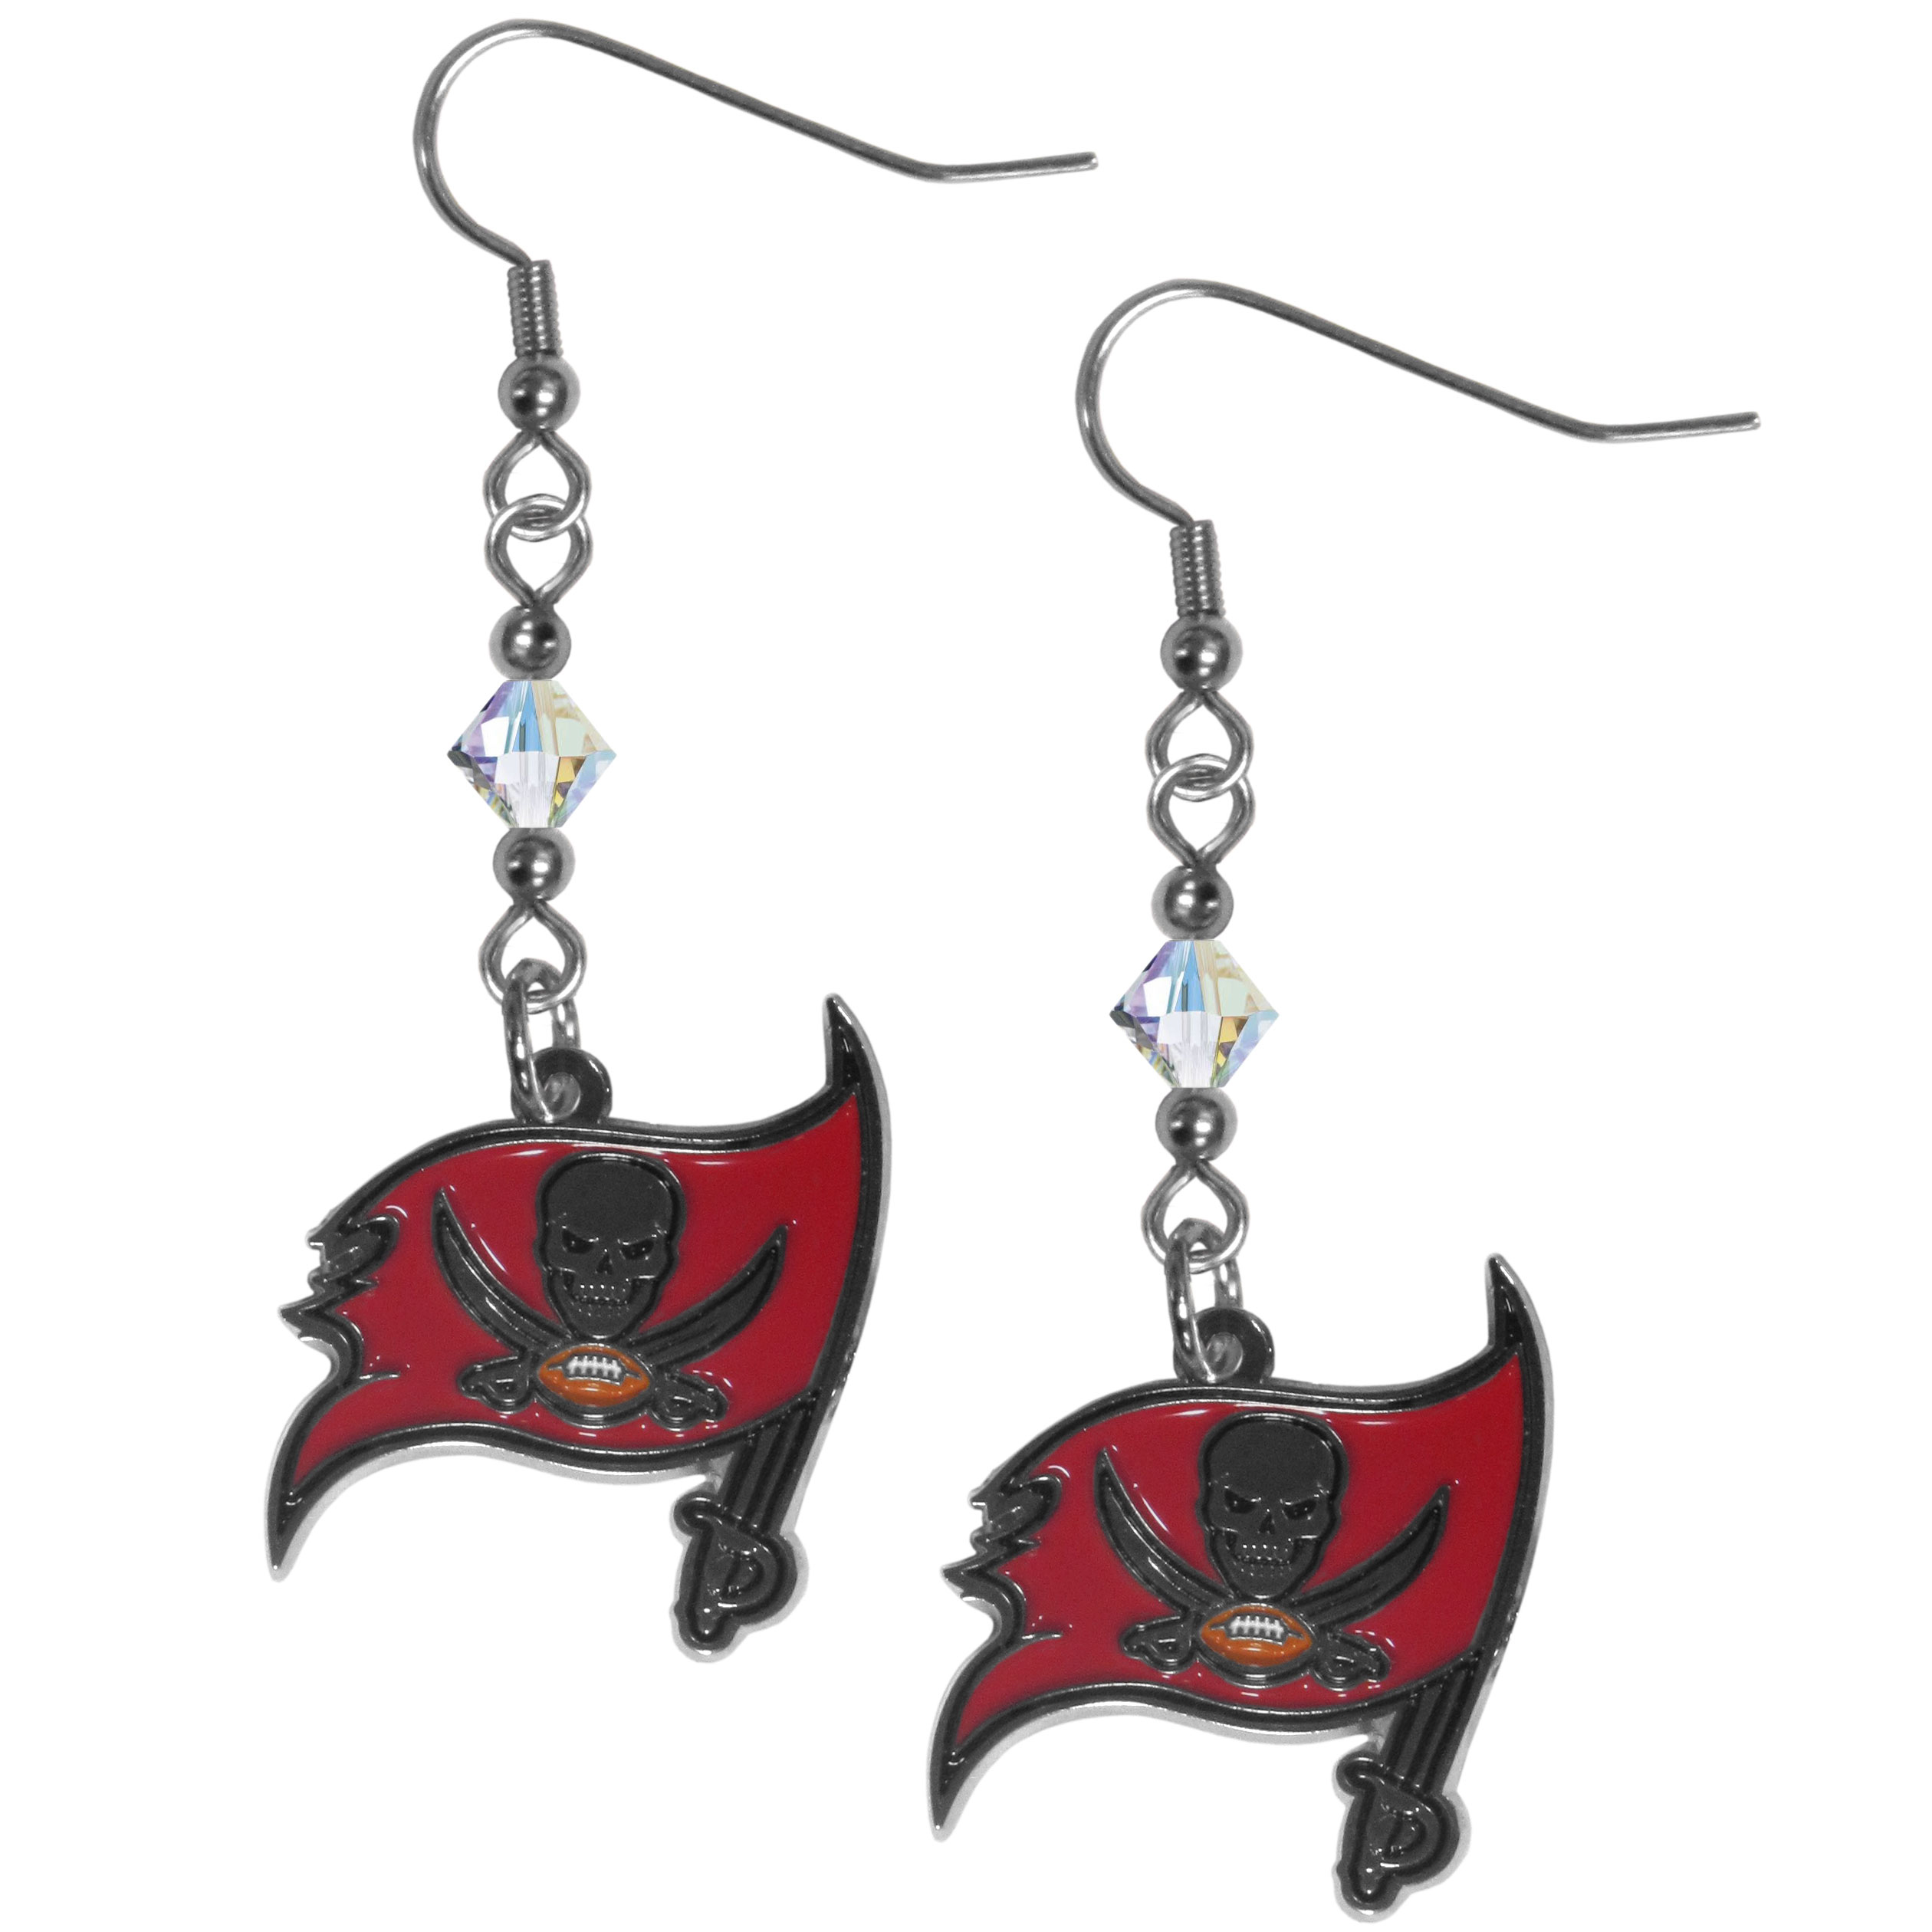 Tampa Bay Buccaneers Chrome Dangle Earrings - Our NFL crystal dangle earrings are the perfect accessory for your game day outfit! The earrings are approximately 1.5 inches long and feature an iridescent crystal bead and nickel free chrome Tampa Bay Buccaneers charm on nickel free, hypoallergenic fishhook posts. Officially licensed NFL product Licensee: Siskiyou Buckle .com